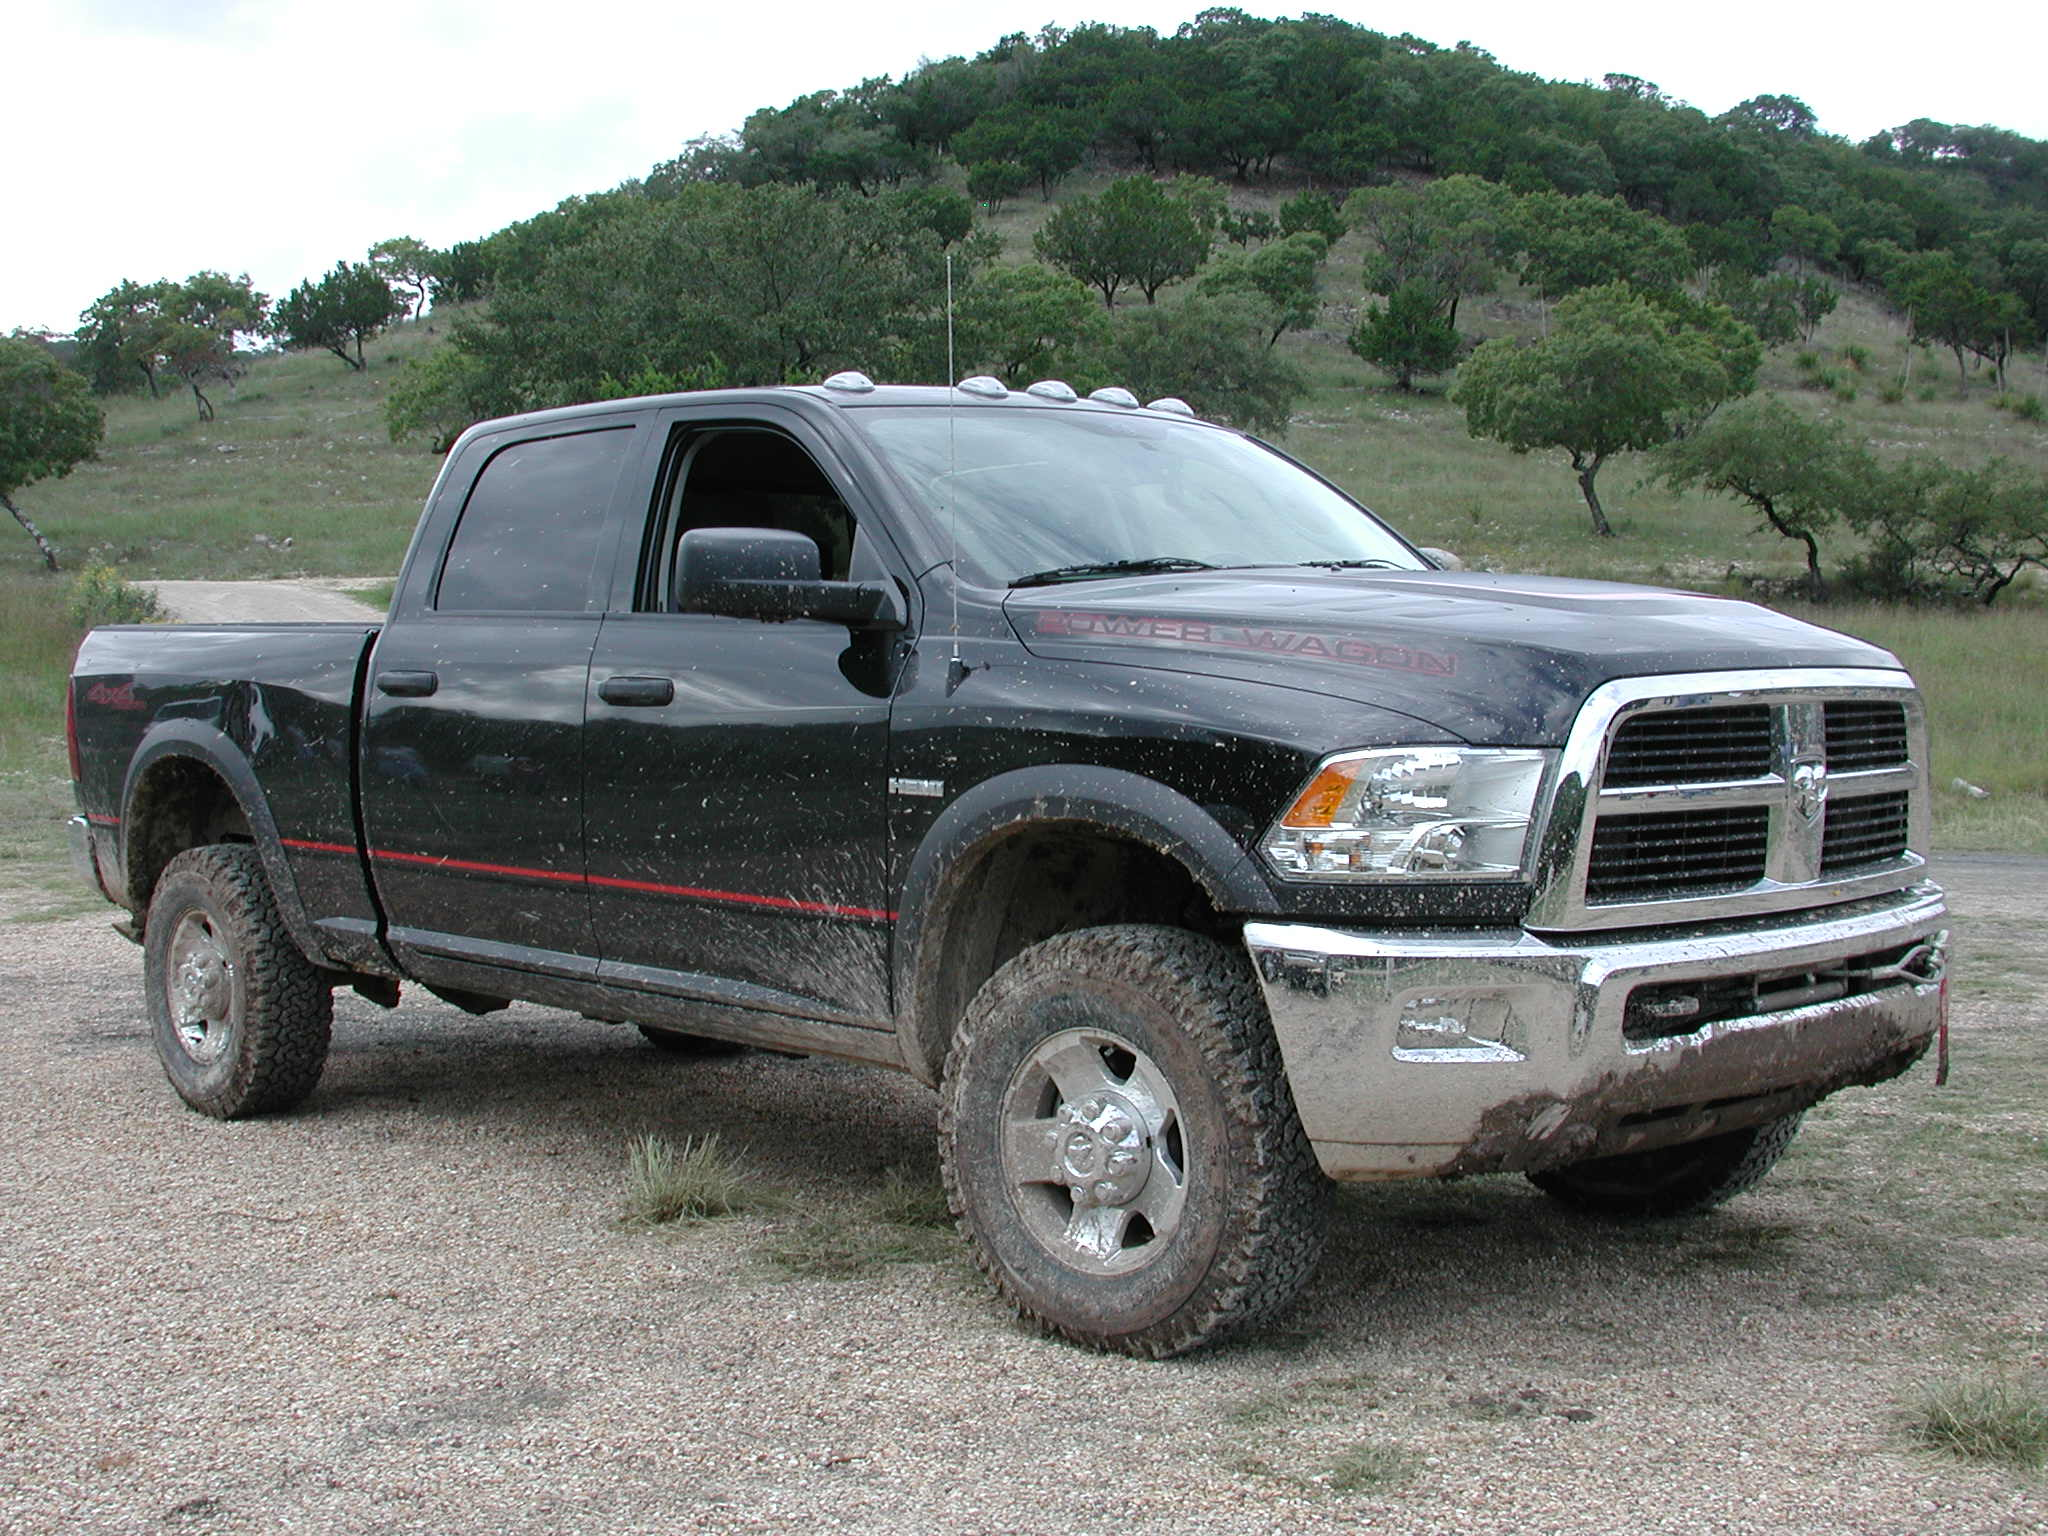 2010 Ram Power Wagon Fuel Infection 1954 Dodge